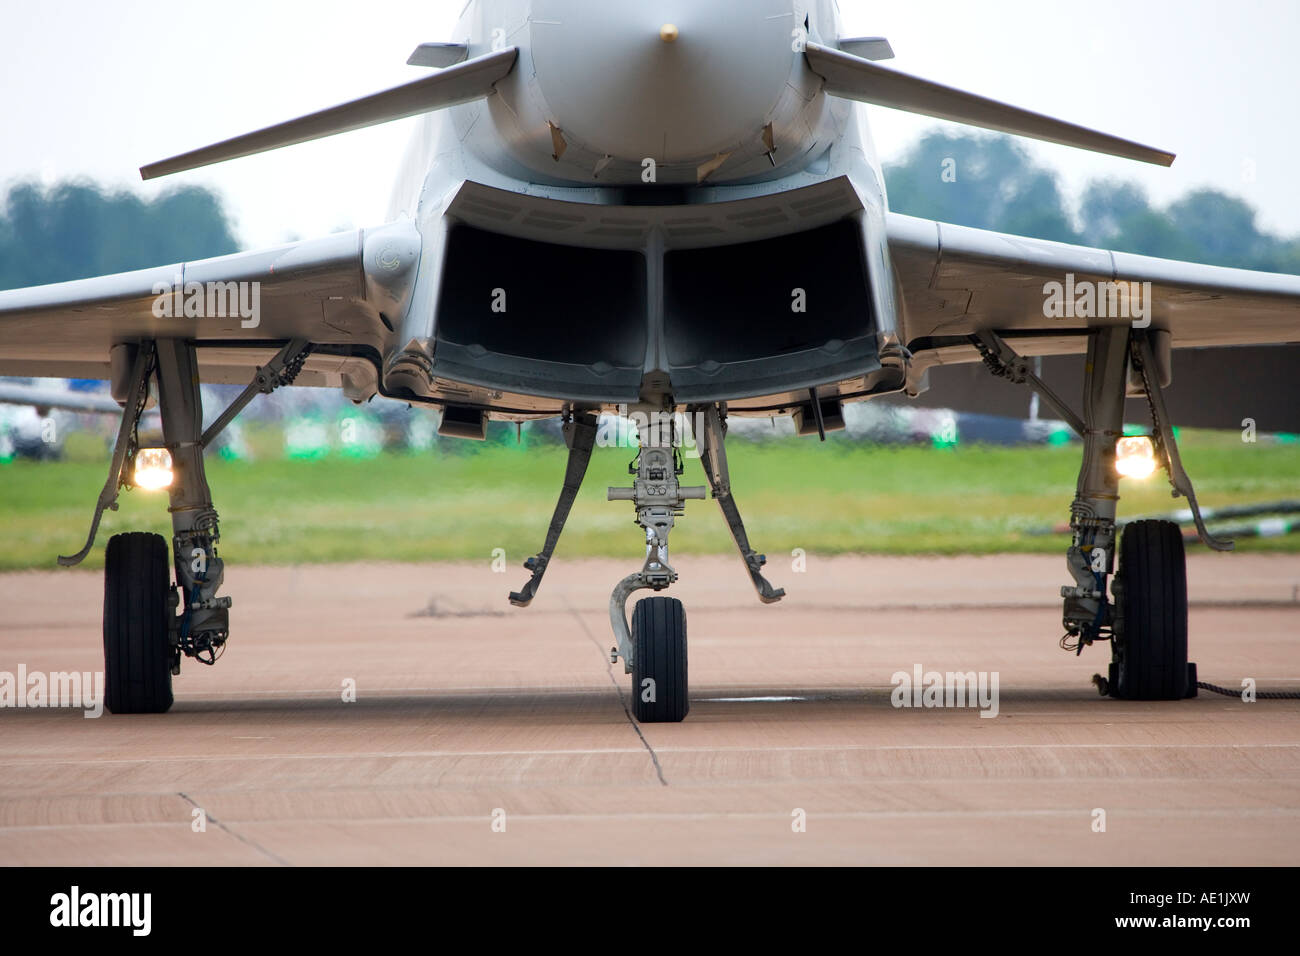 Royal Air Force Eurofighter Typhoon T1 twin-engine multi role canard delta strike fighter aircraft - Stock Image